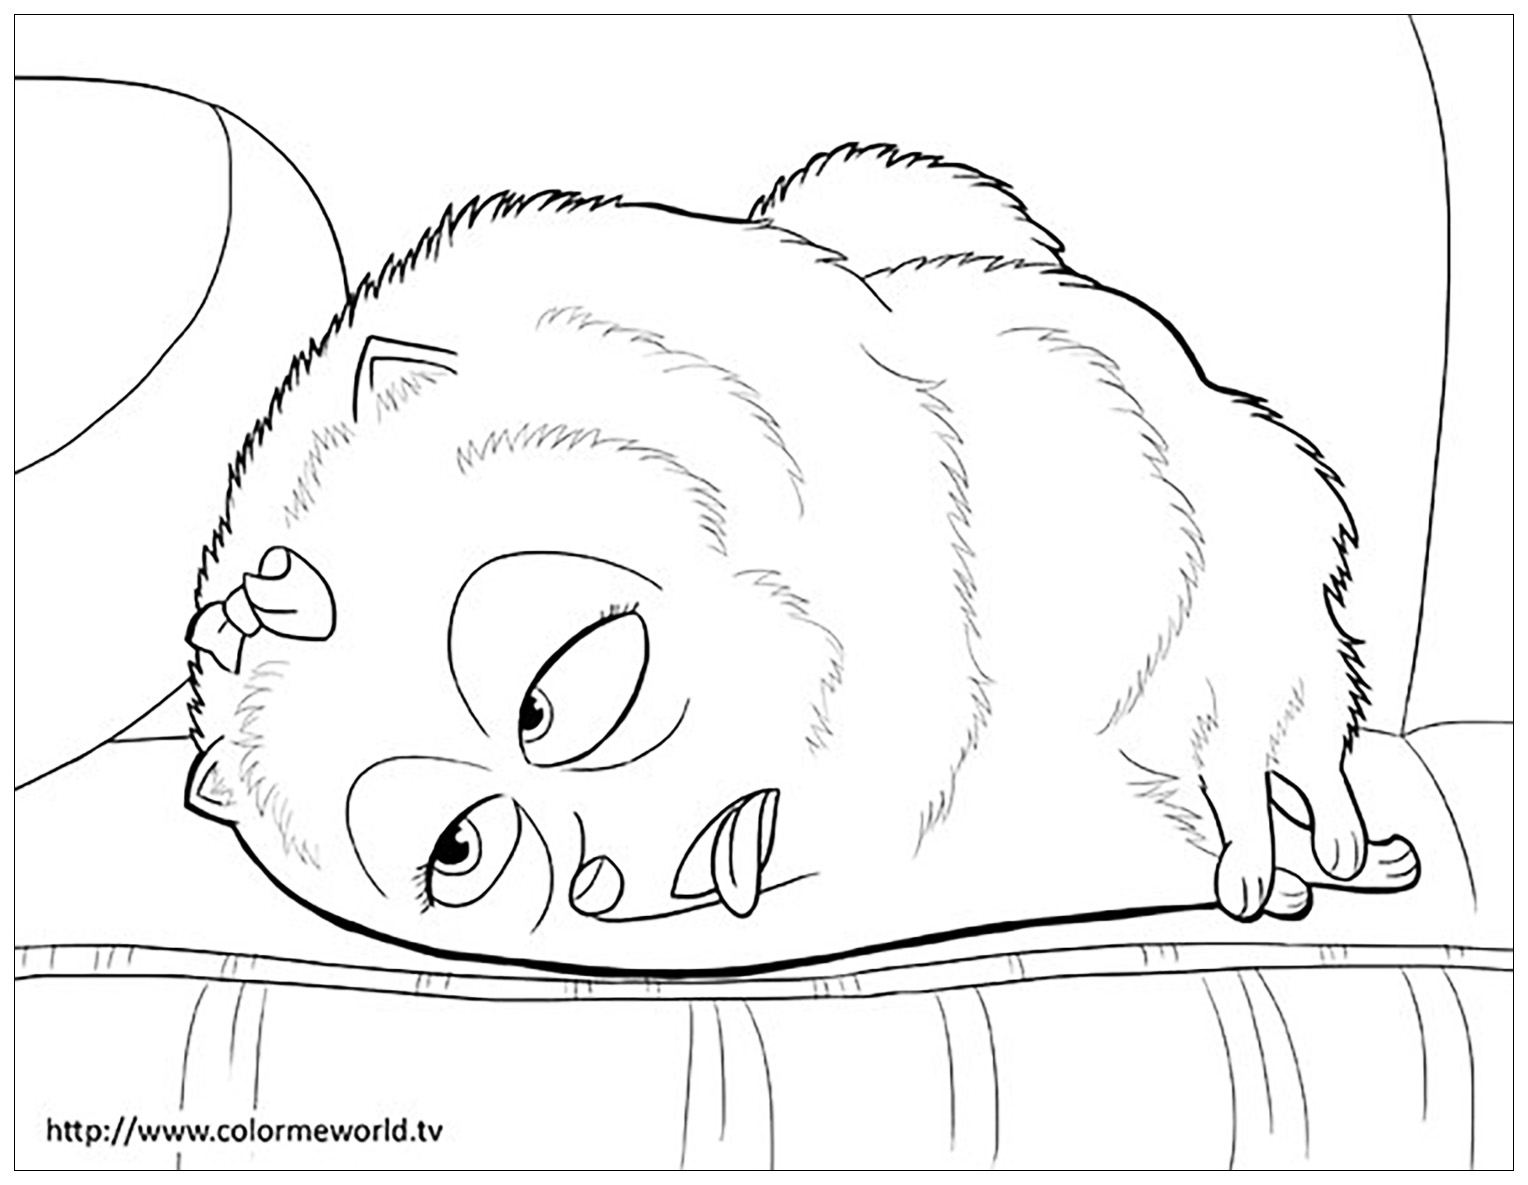 Beautiful The Secret Life of Pets coloring page to print and color